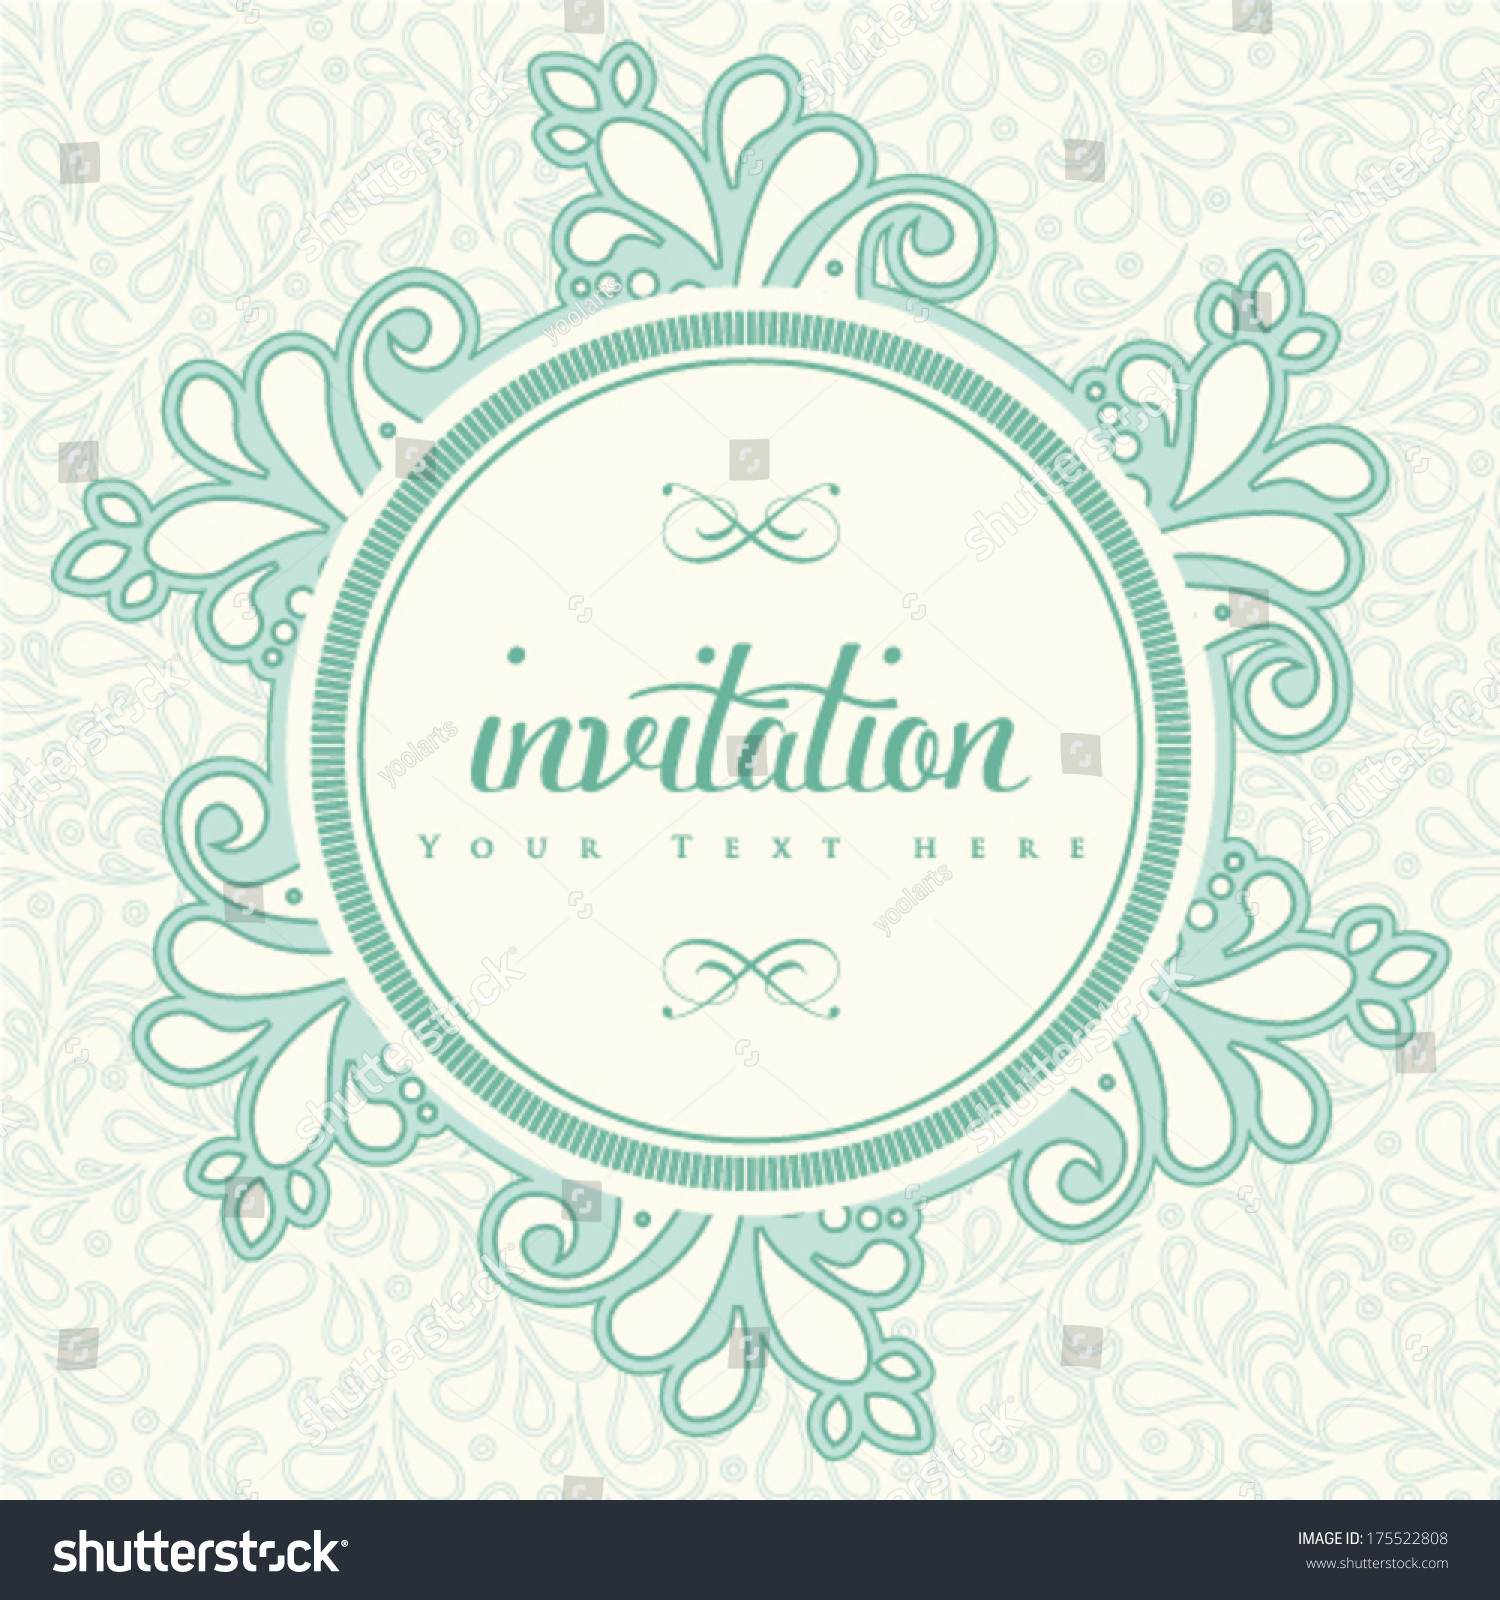 Vector wedding invitation card Perfect as invitation or announcement